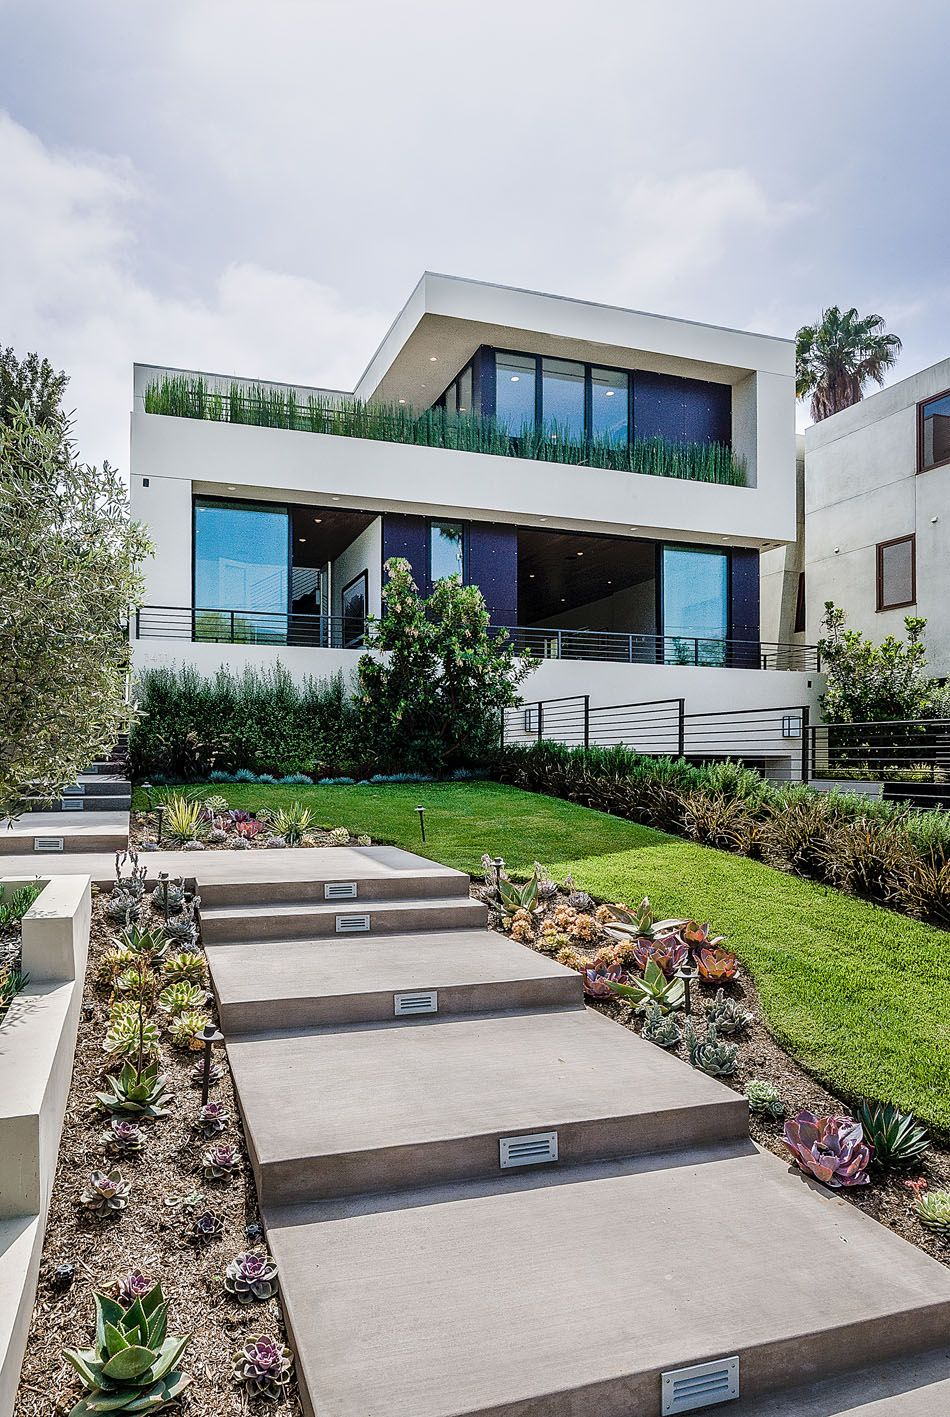 Francois Illas New Tradition: Exclusive New Home Overlooking The City Of Angels